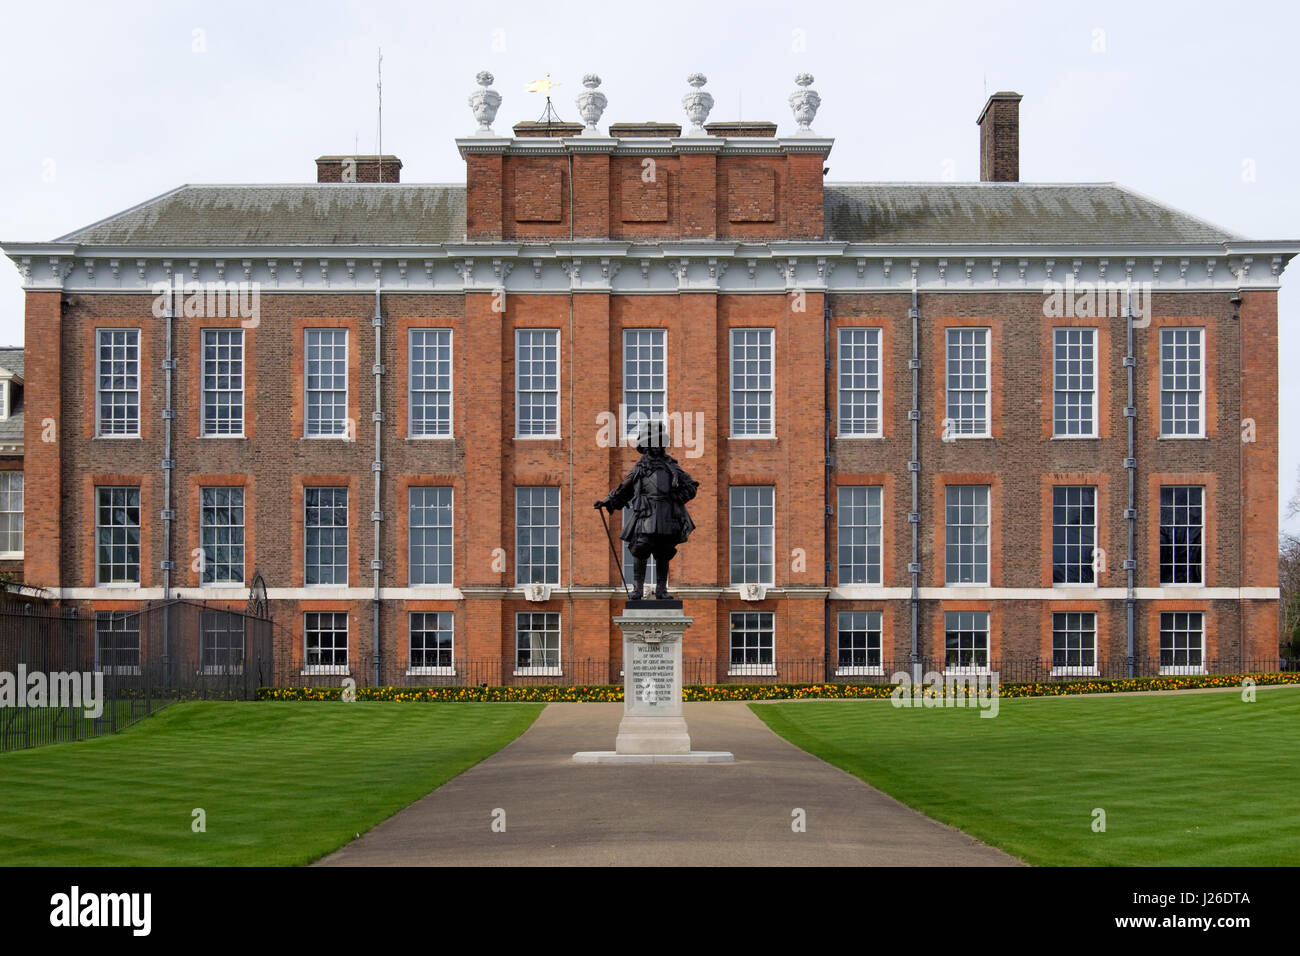 Statue of William III in front of Kensington Palace, London, England, UK, Europe - Stock Image